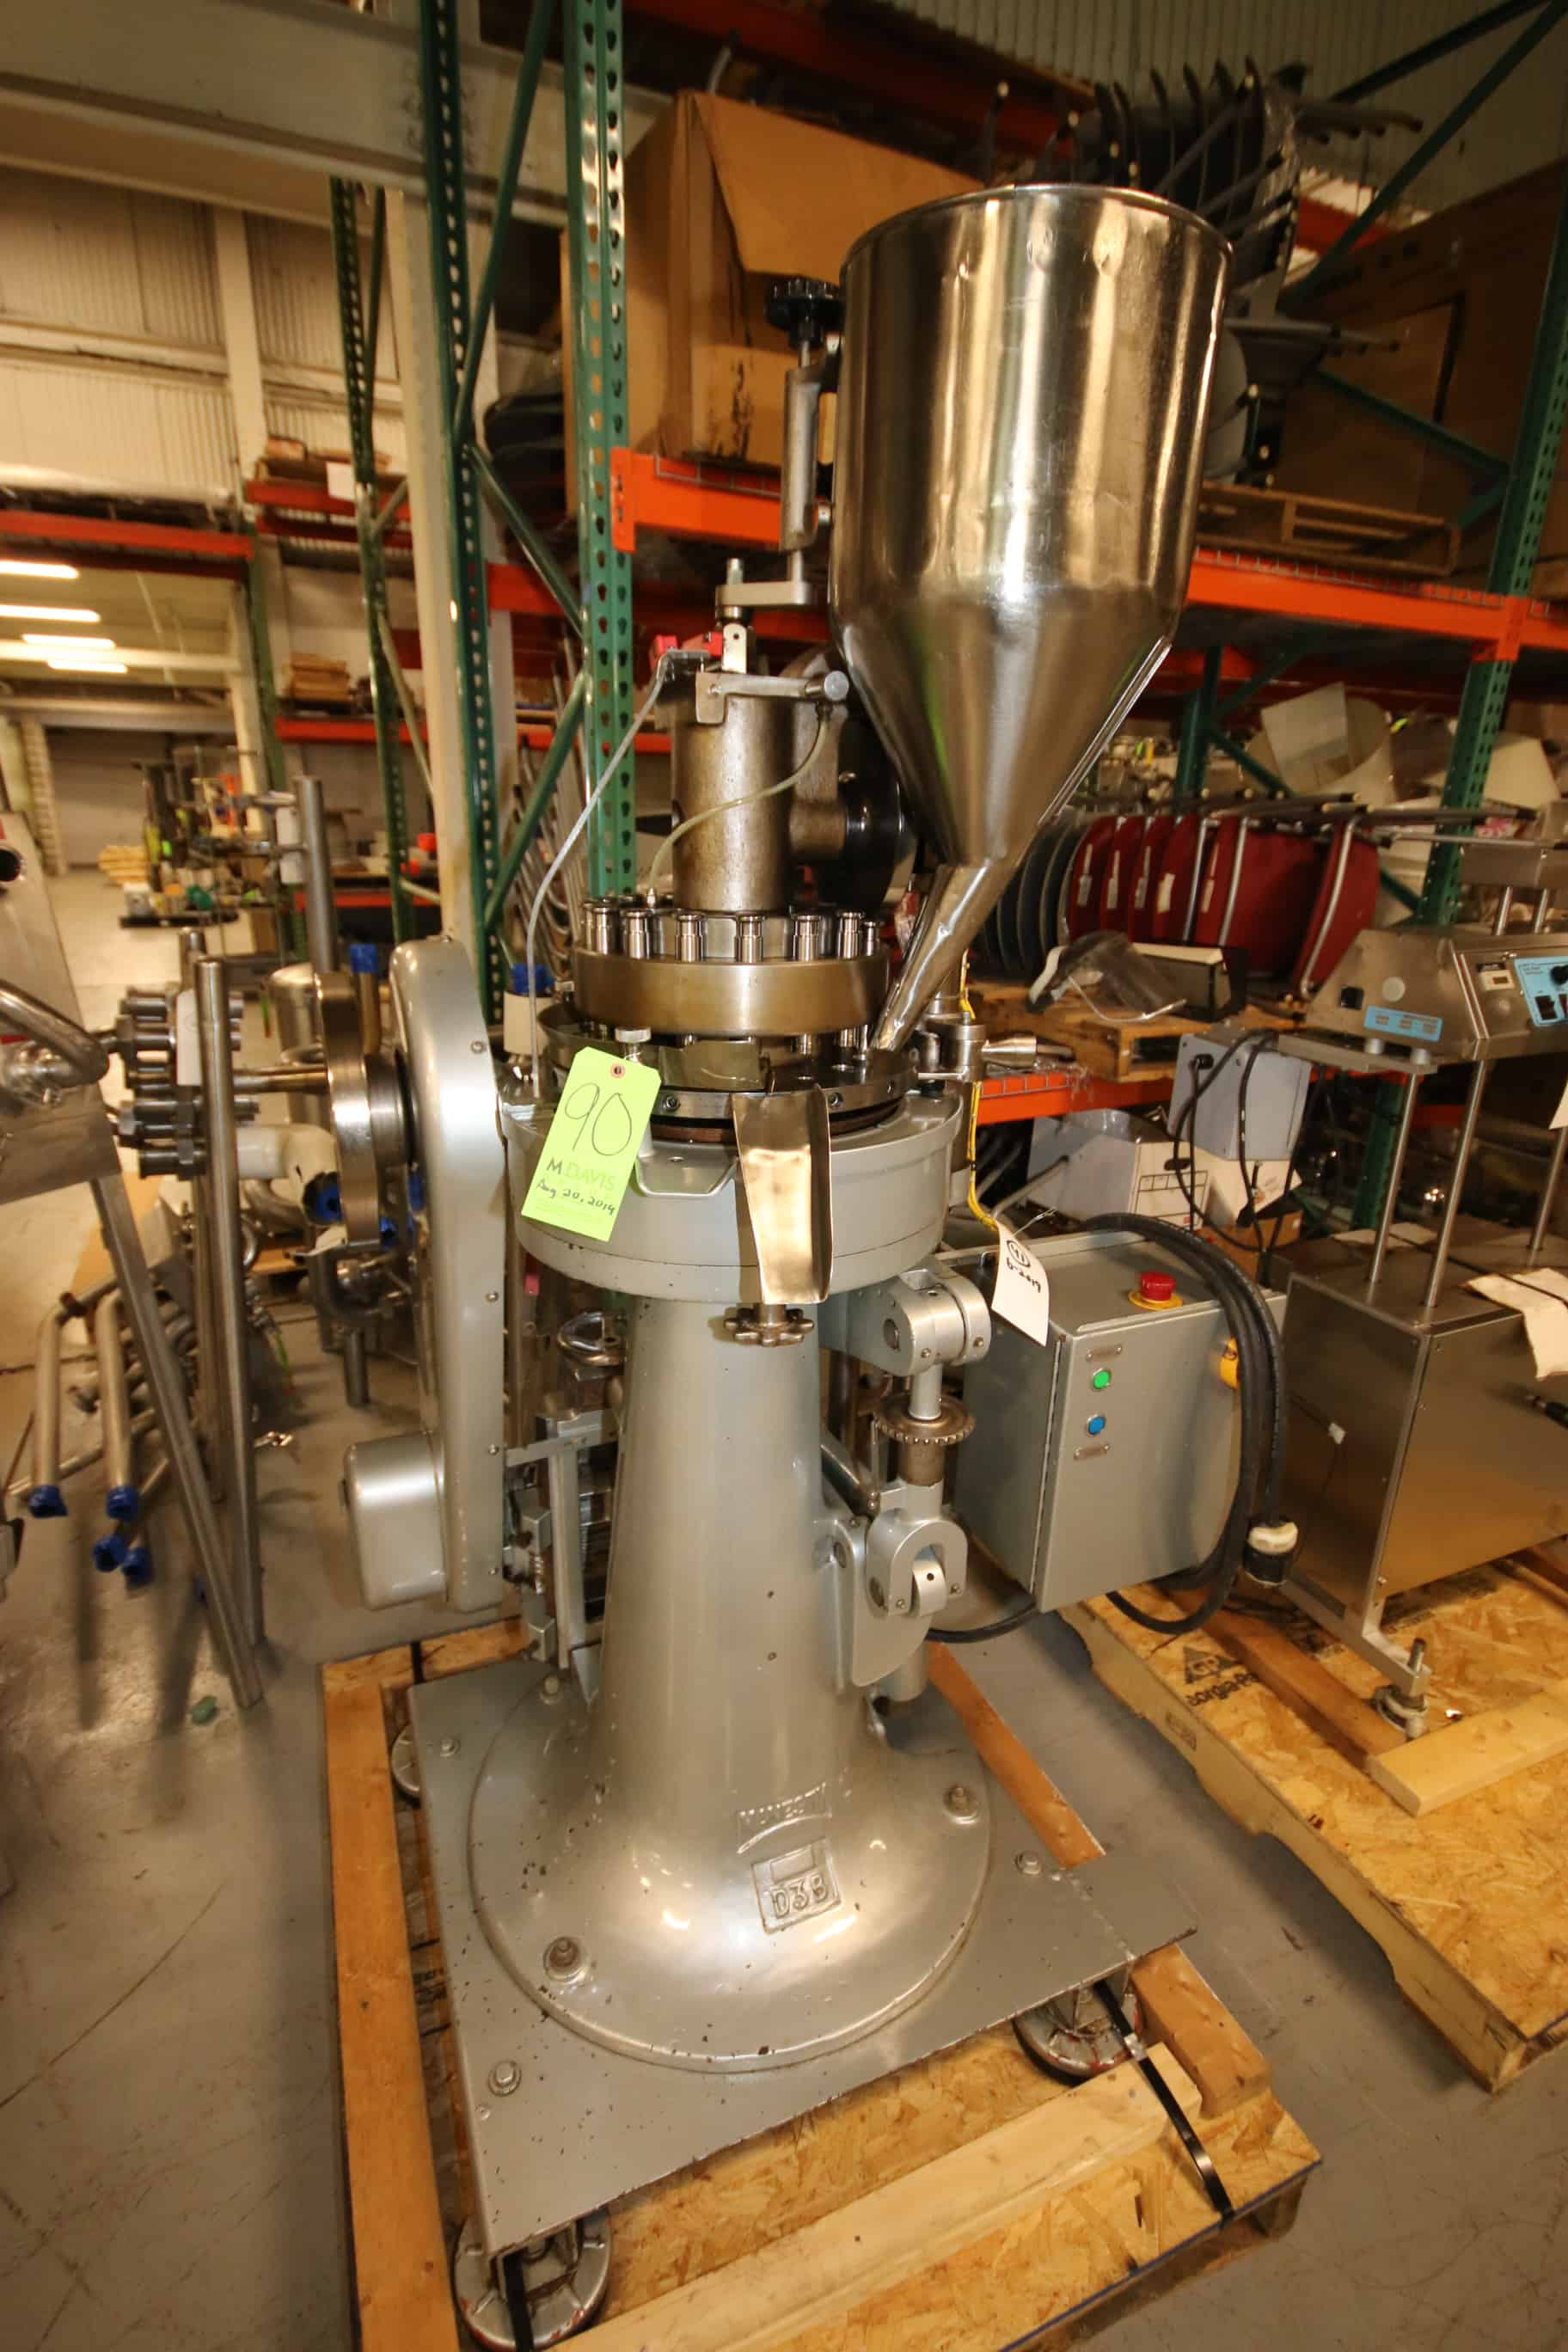 2009 Manesty 16-Head Rotary Tablet Press, M/N D3B, S/N 4D173, with Start/Stop Switch (Rigging & Loading Fee $150.00) (Located in Pittsburgh, PA)